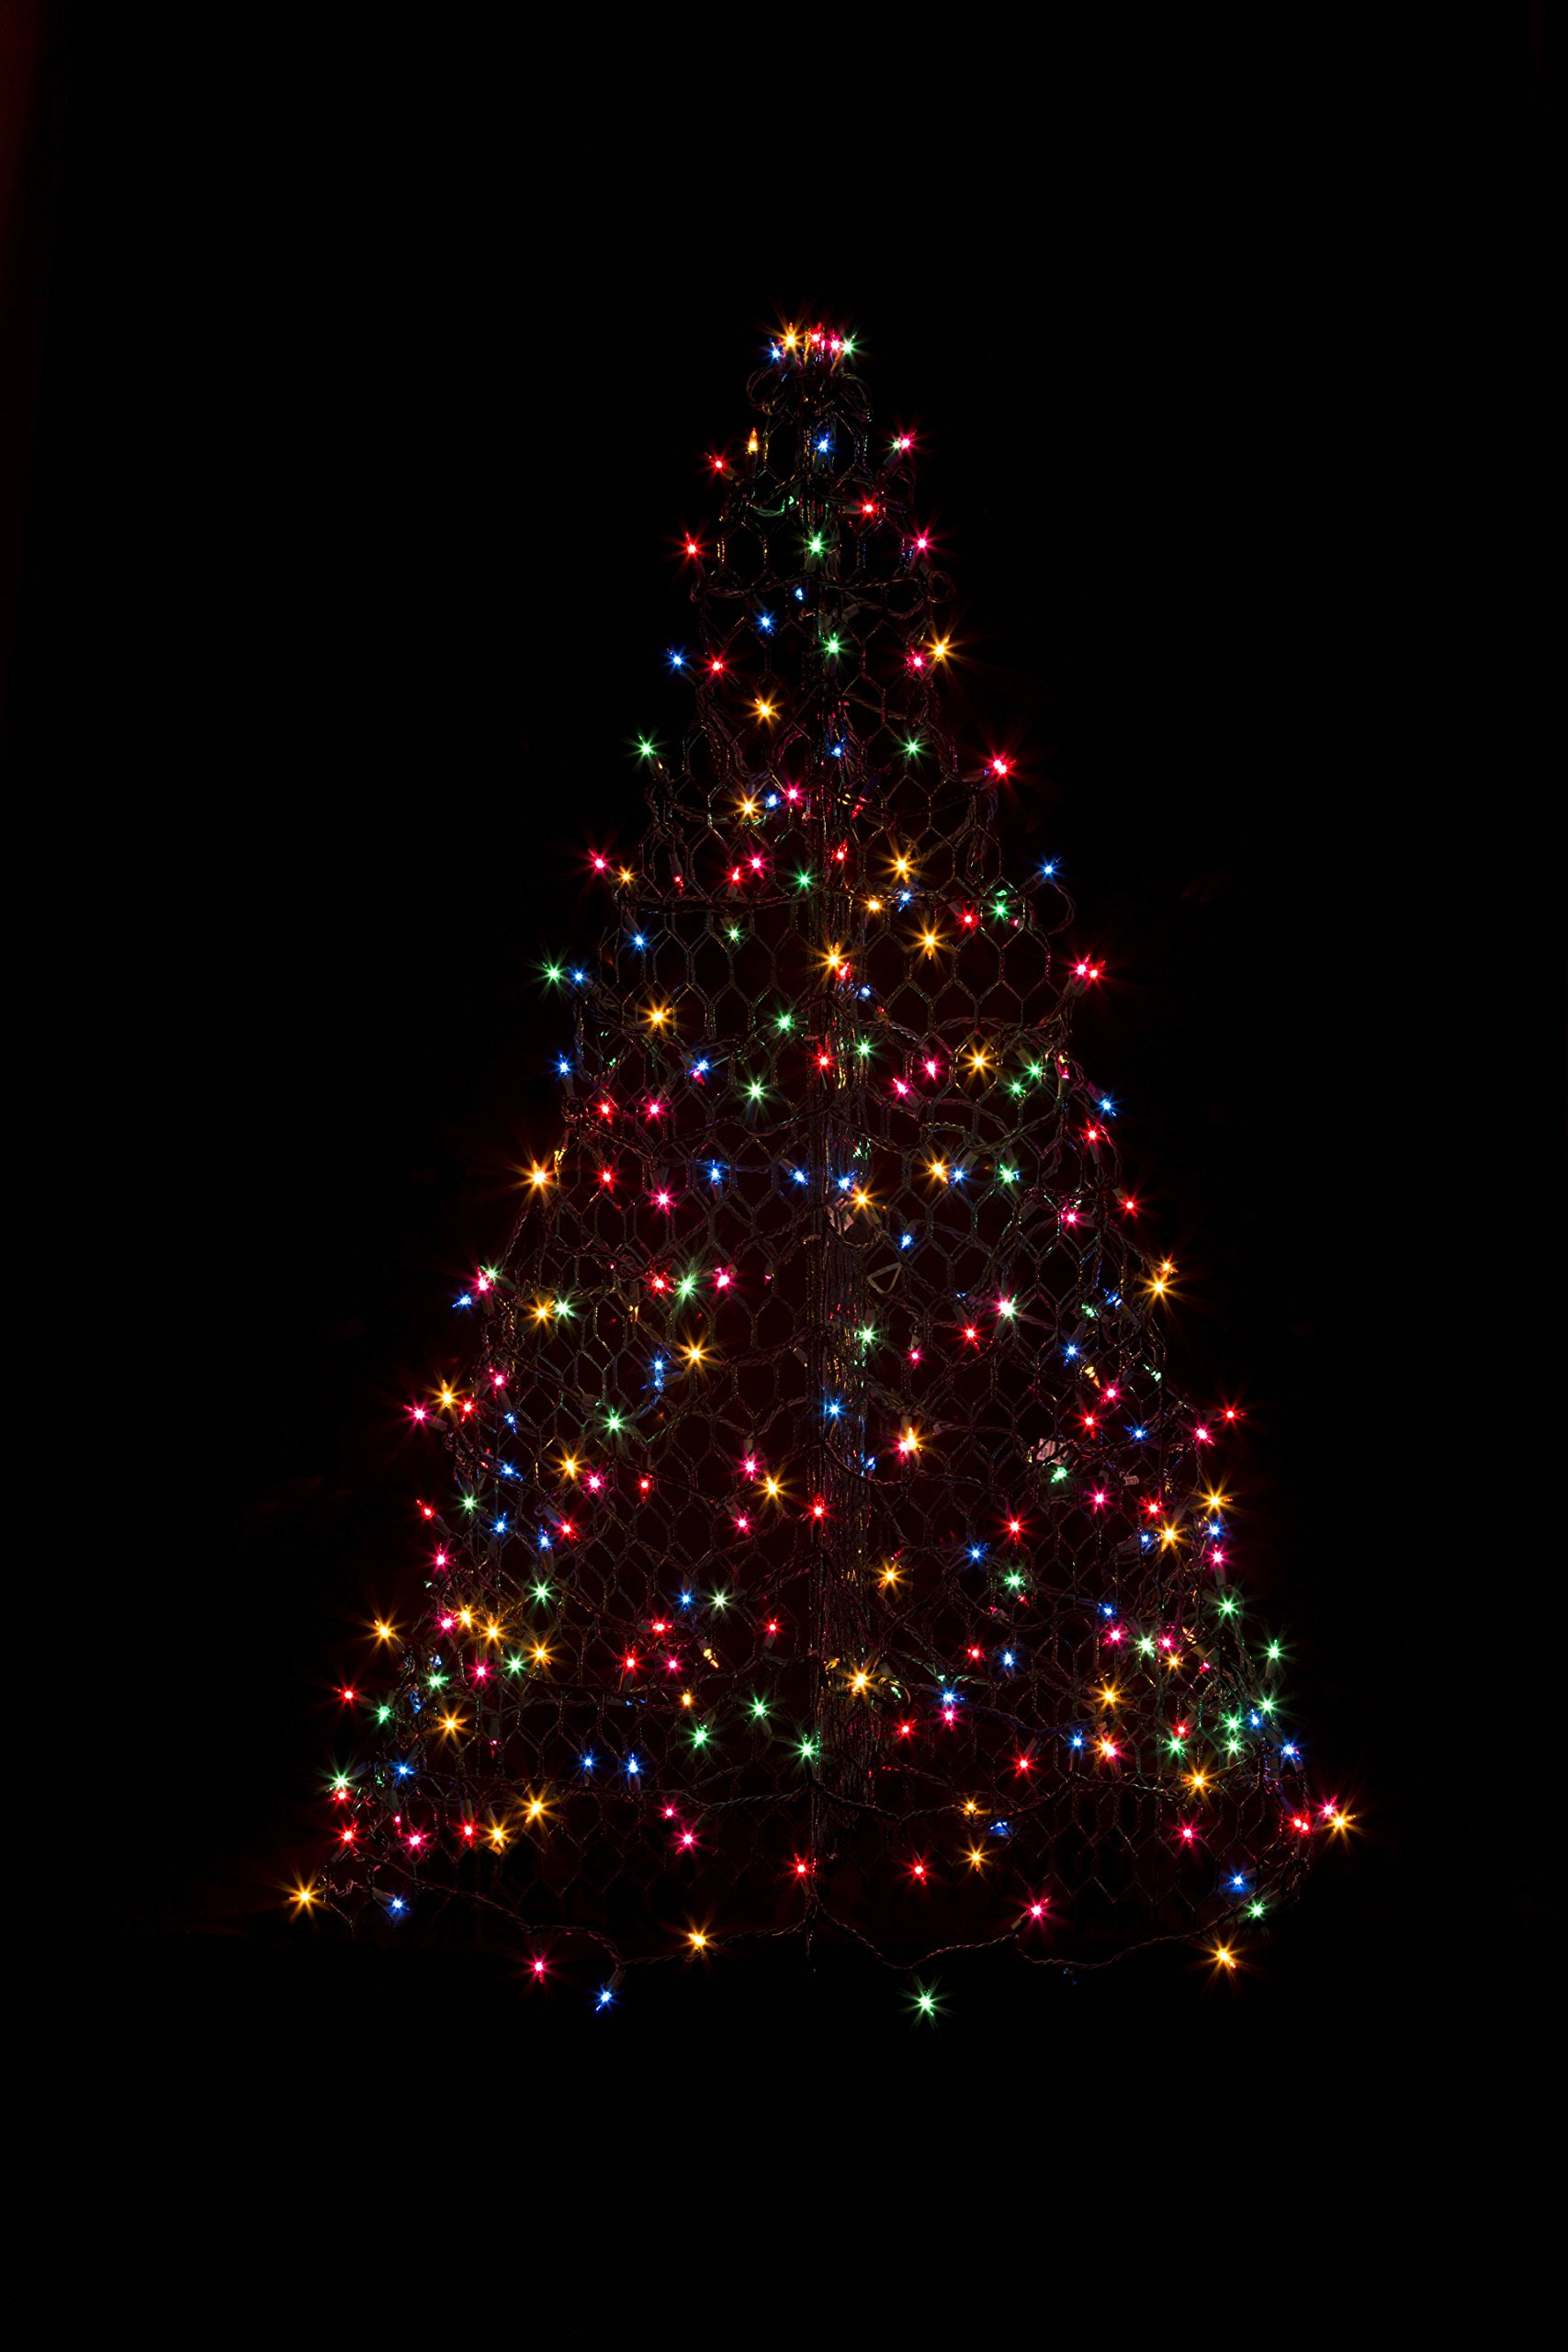 5 ft. Indoor/Outdoor Pre-Lit LED Artificial Christmas Tree with Green Frame and 280 Multi-Color Lights by Crab Pot Trees